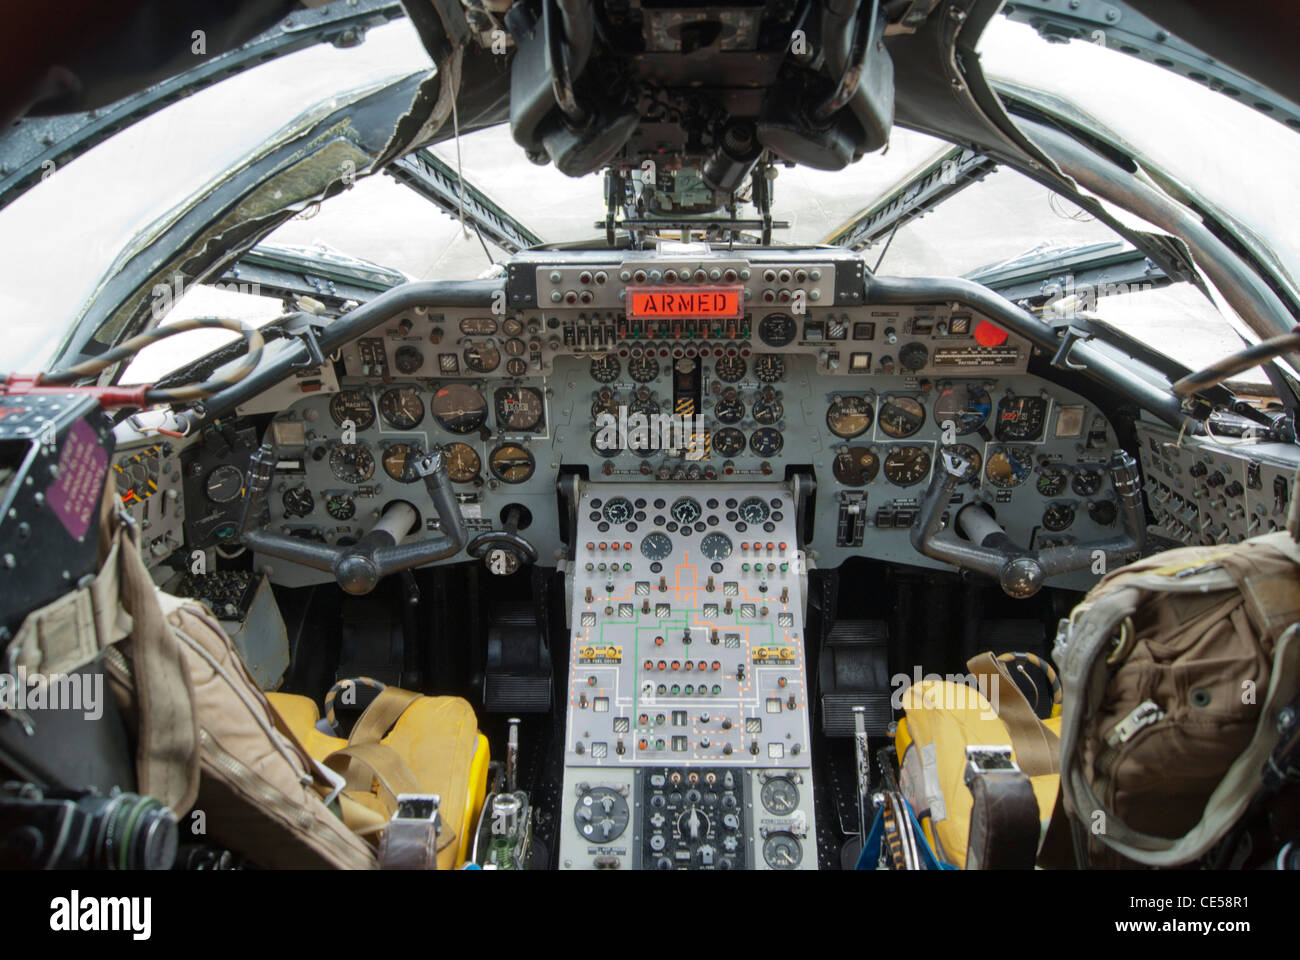 Handley Page Victor cockpit Stock Photo: 43142597 - Alamy B2 Cockpit Panorama